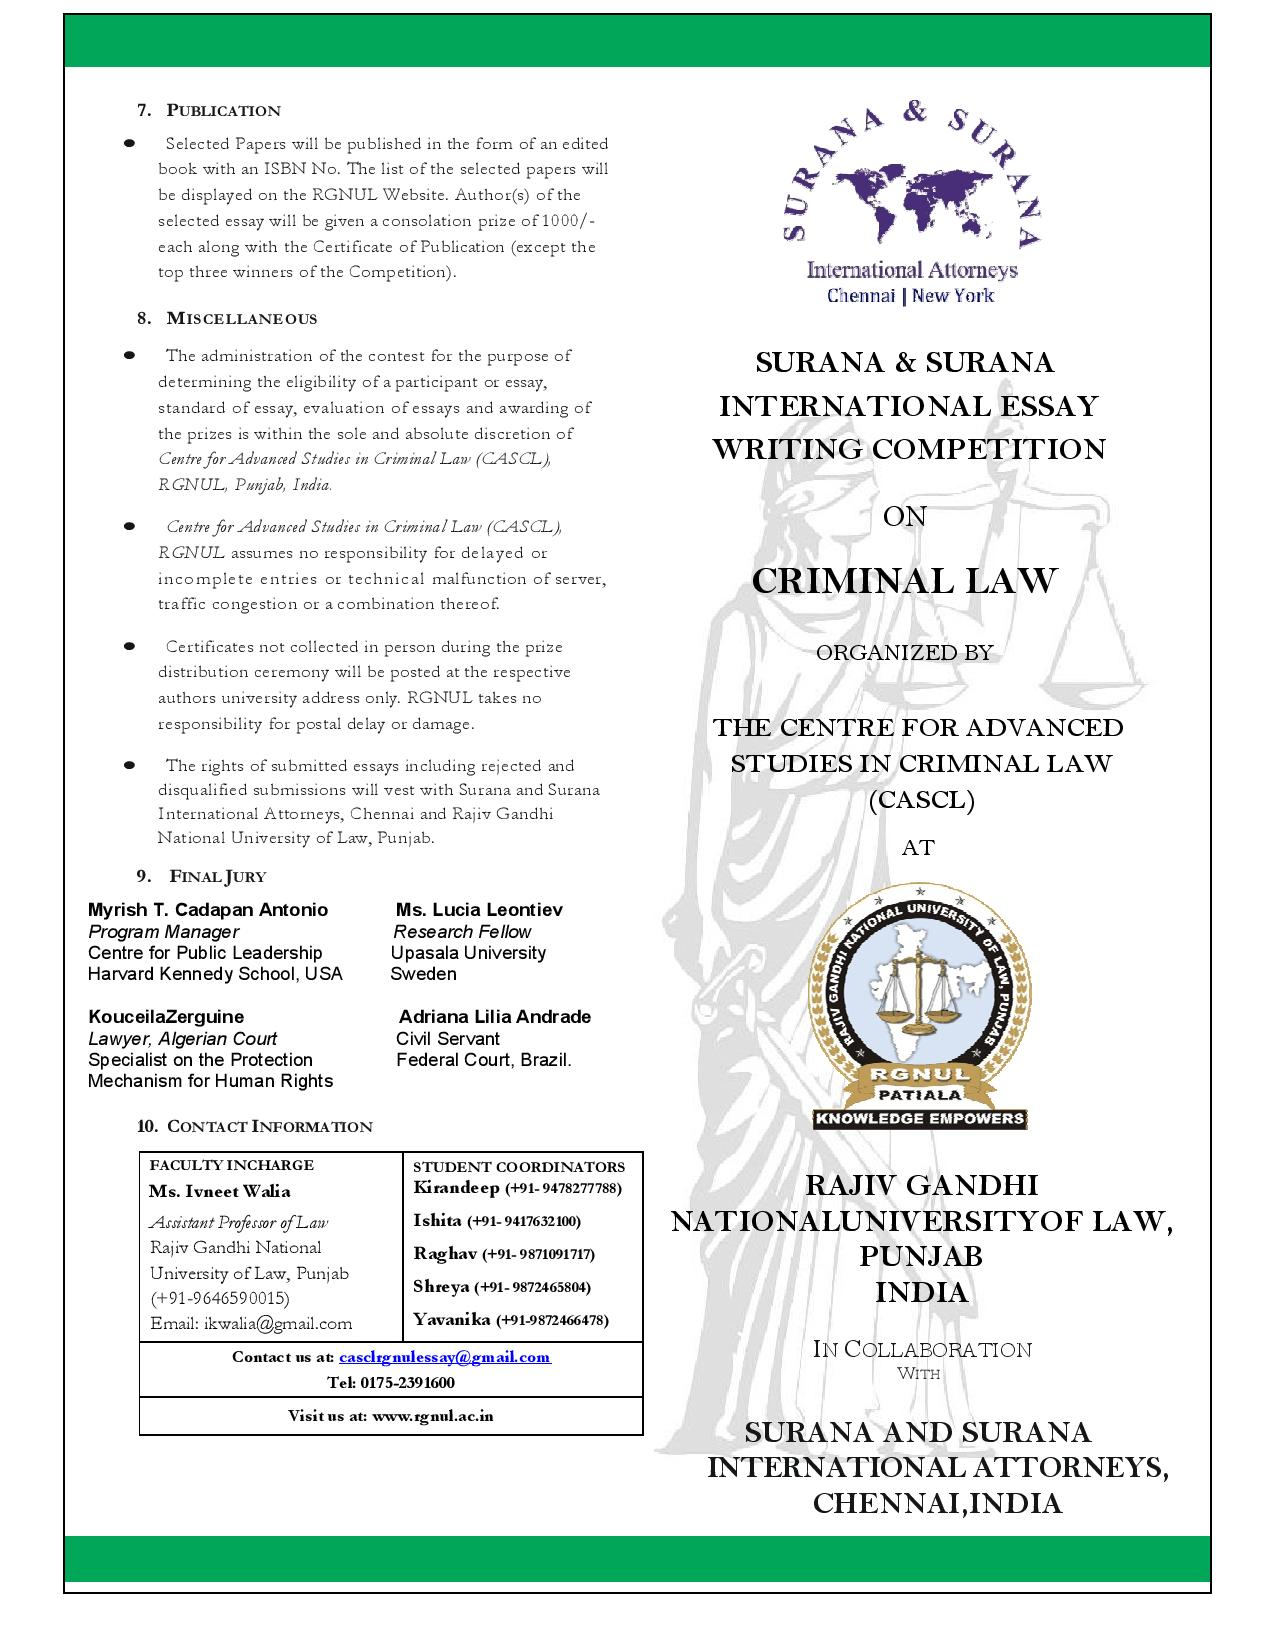 essay writing competitions law The human rights essay award is an annual competition sponsored by the academy that seeks to stimulate the production of scholarly work in international human rights law participants have the flexibility to choose any subject related to the assigned topic.